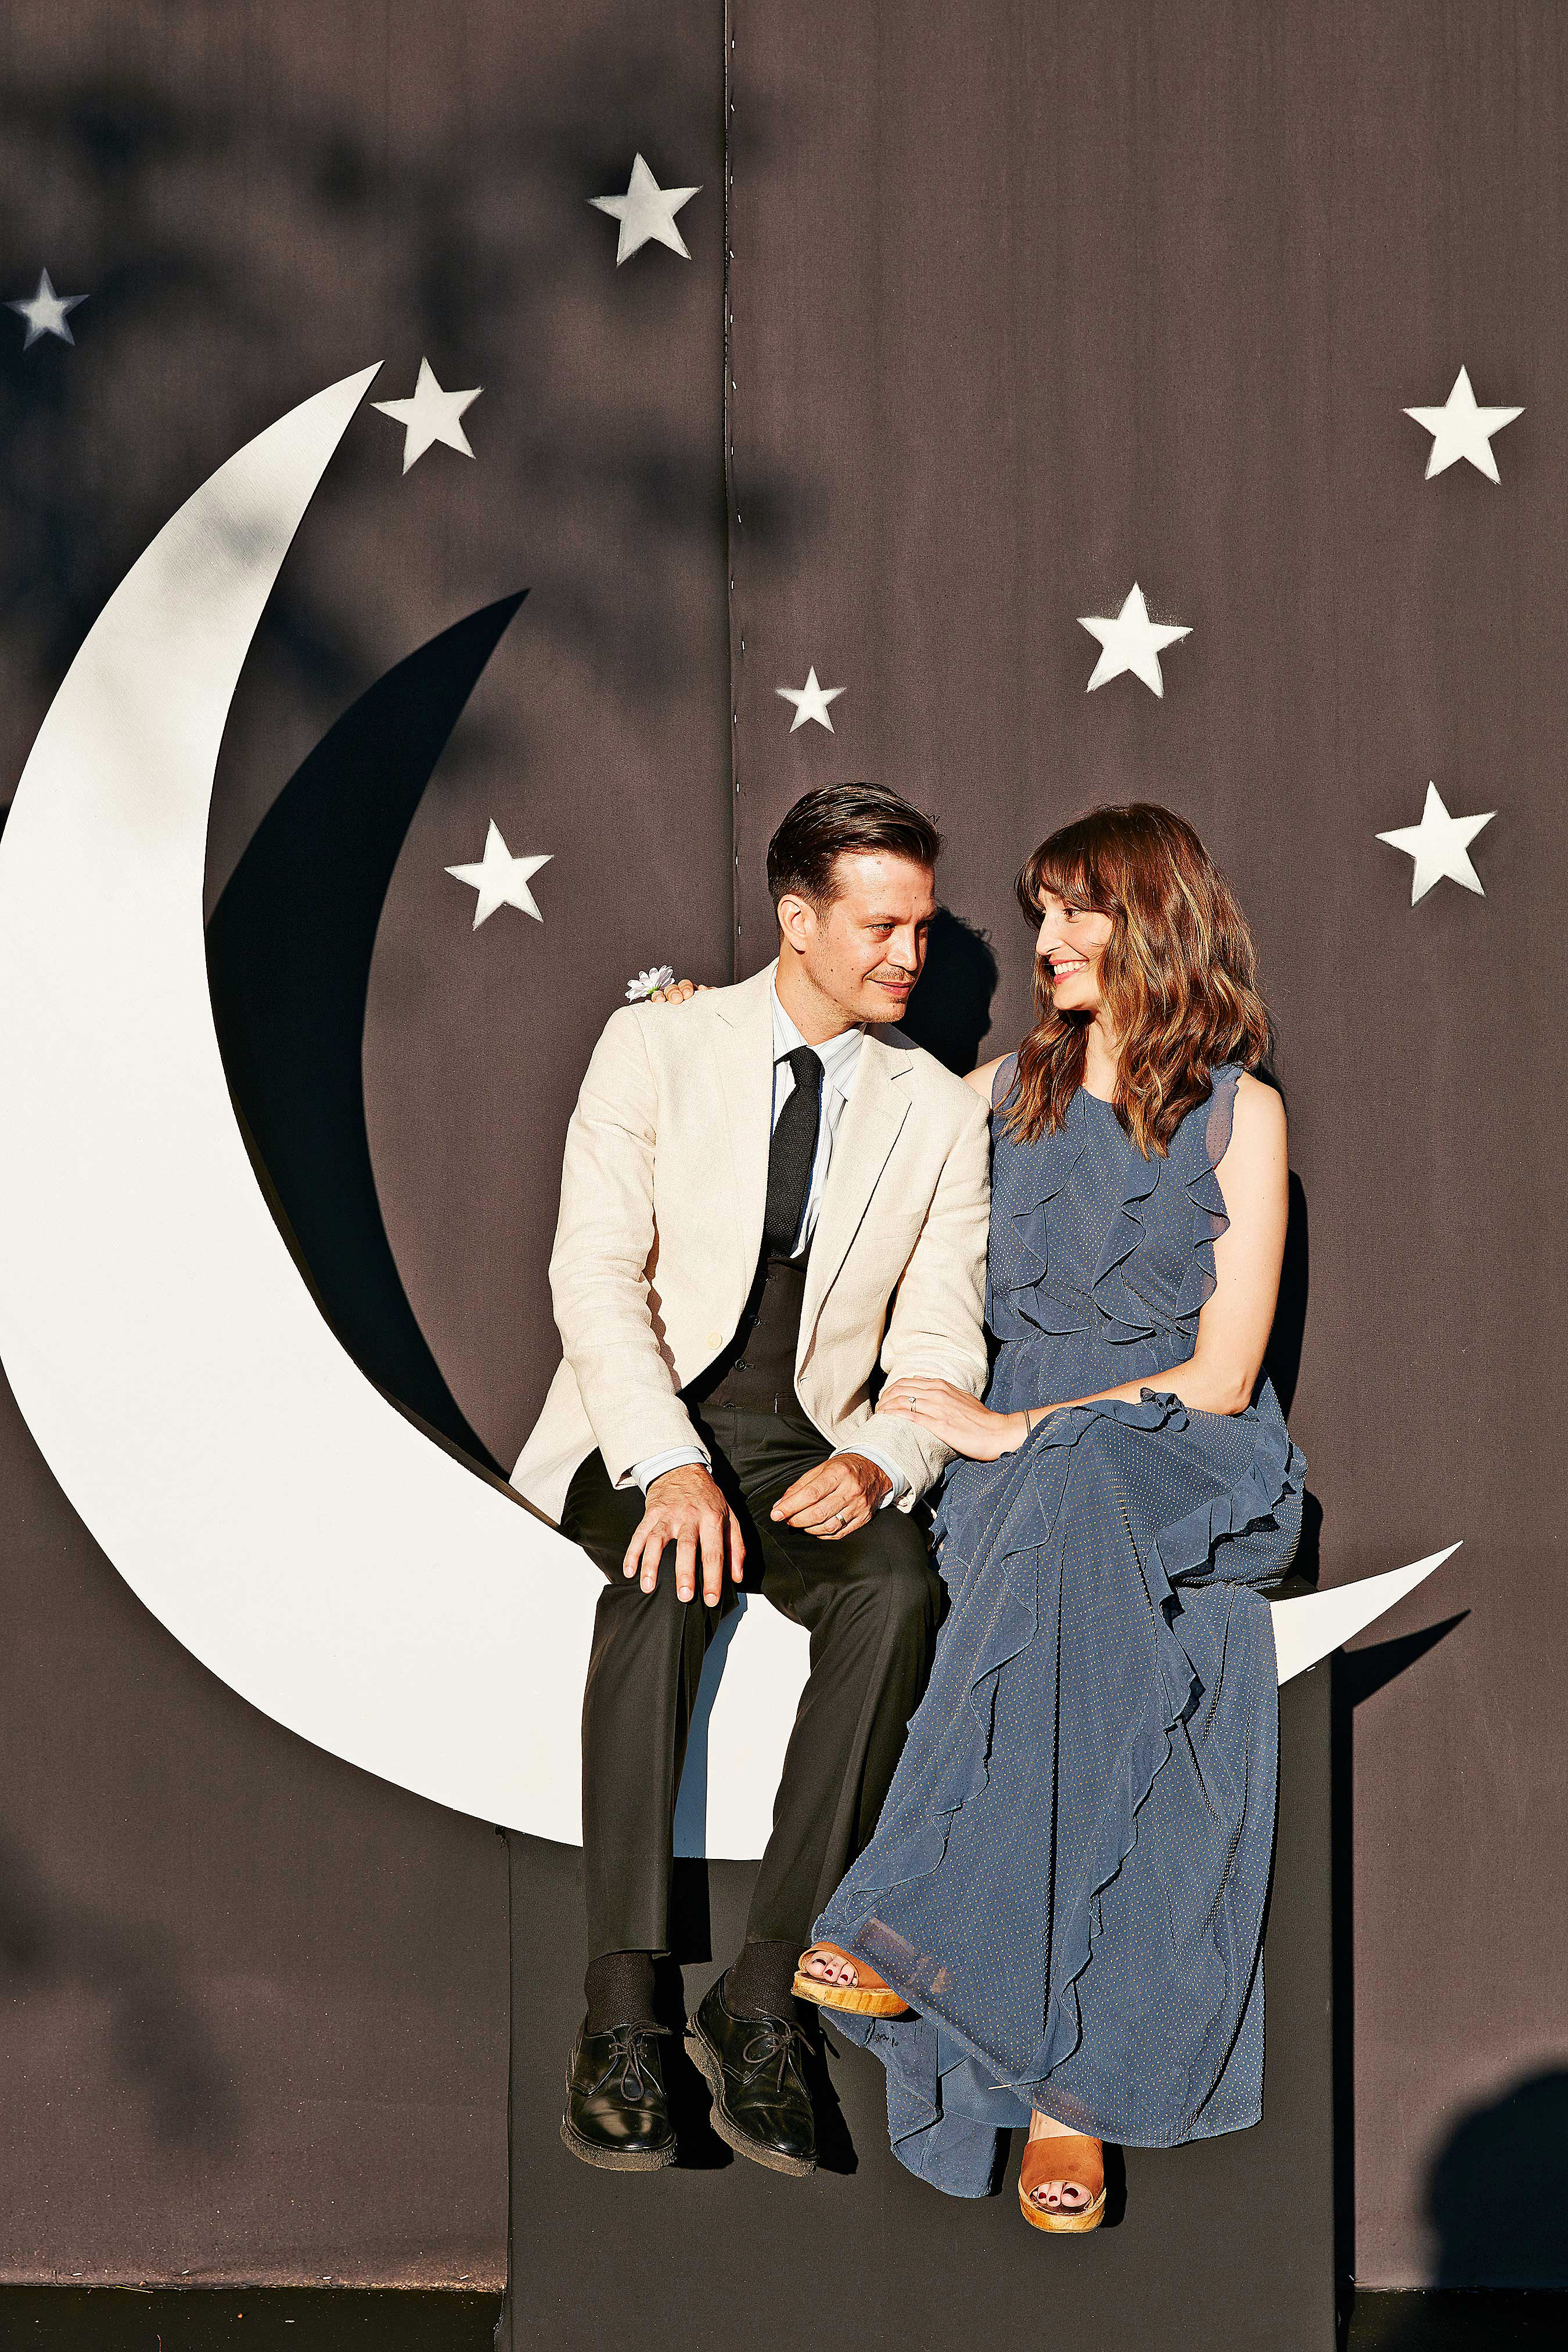 avril quy wedding new york celestial photo booth moon stars